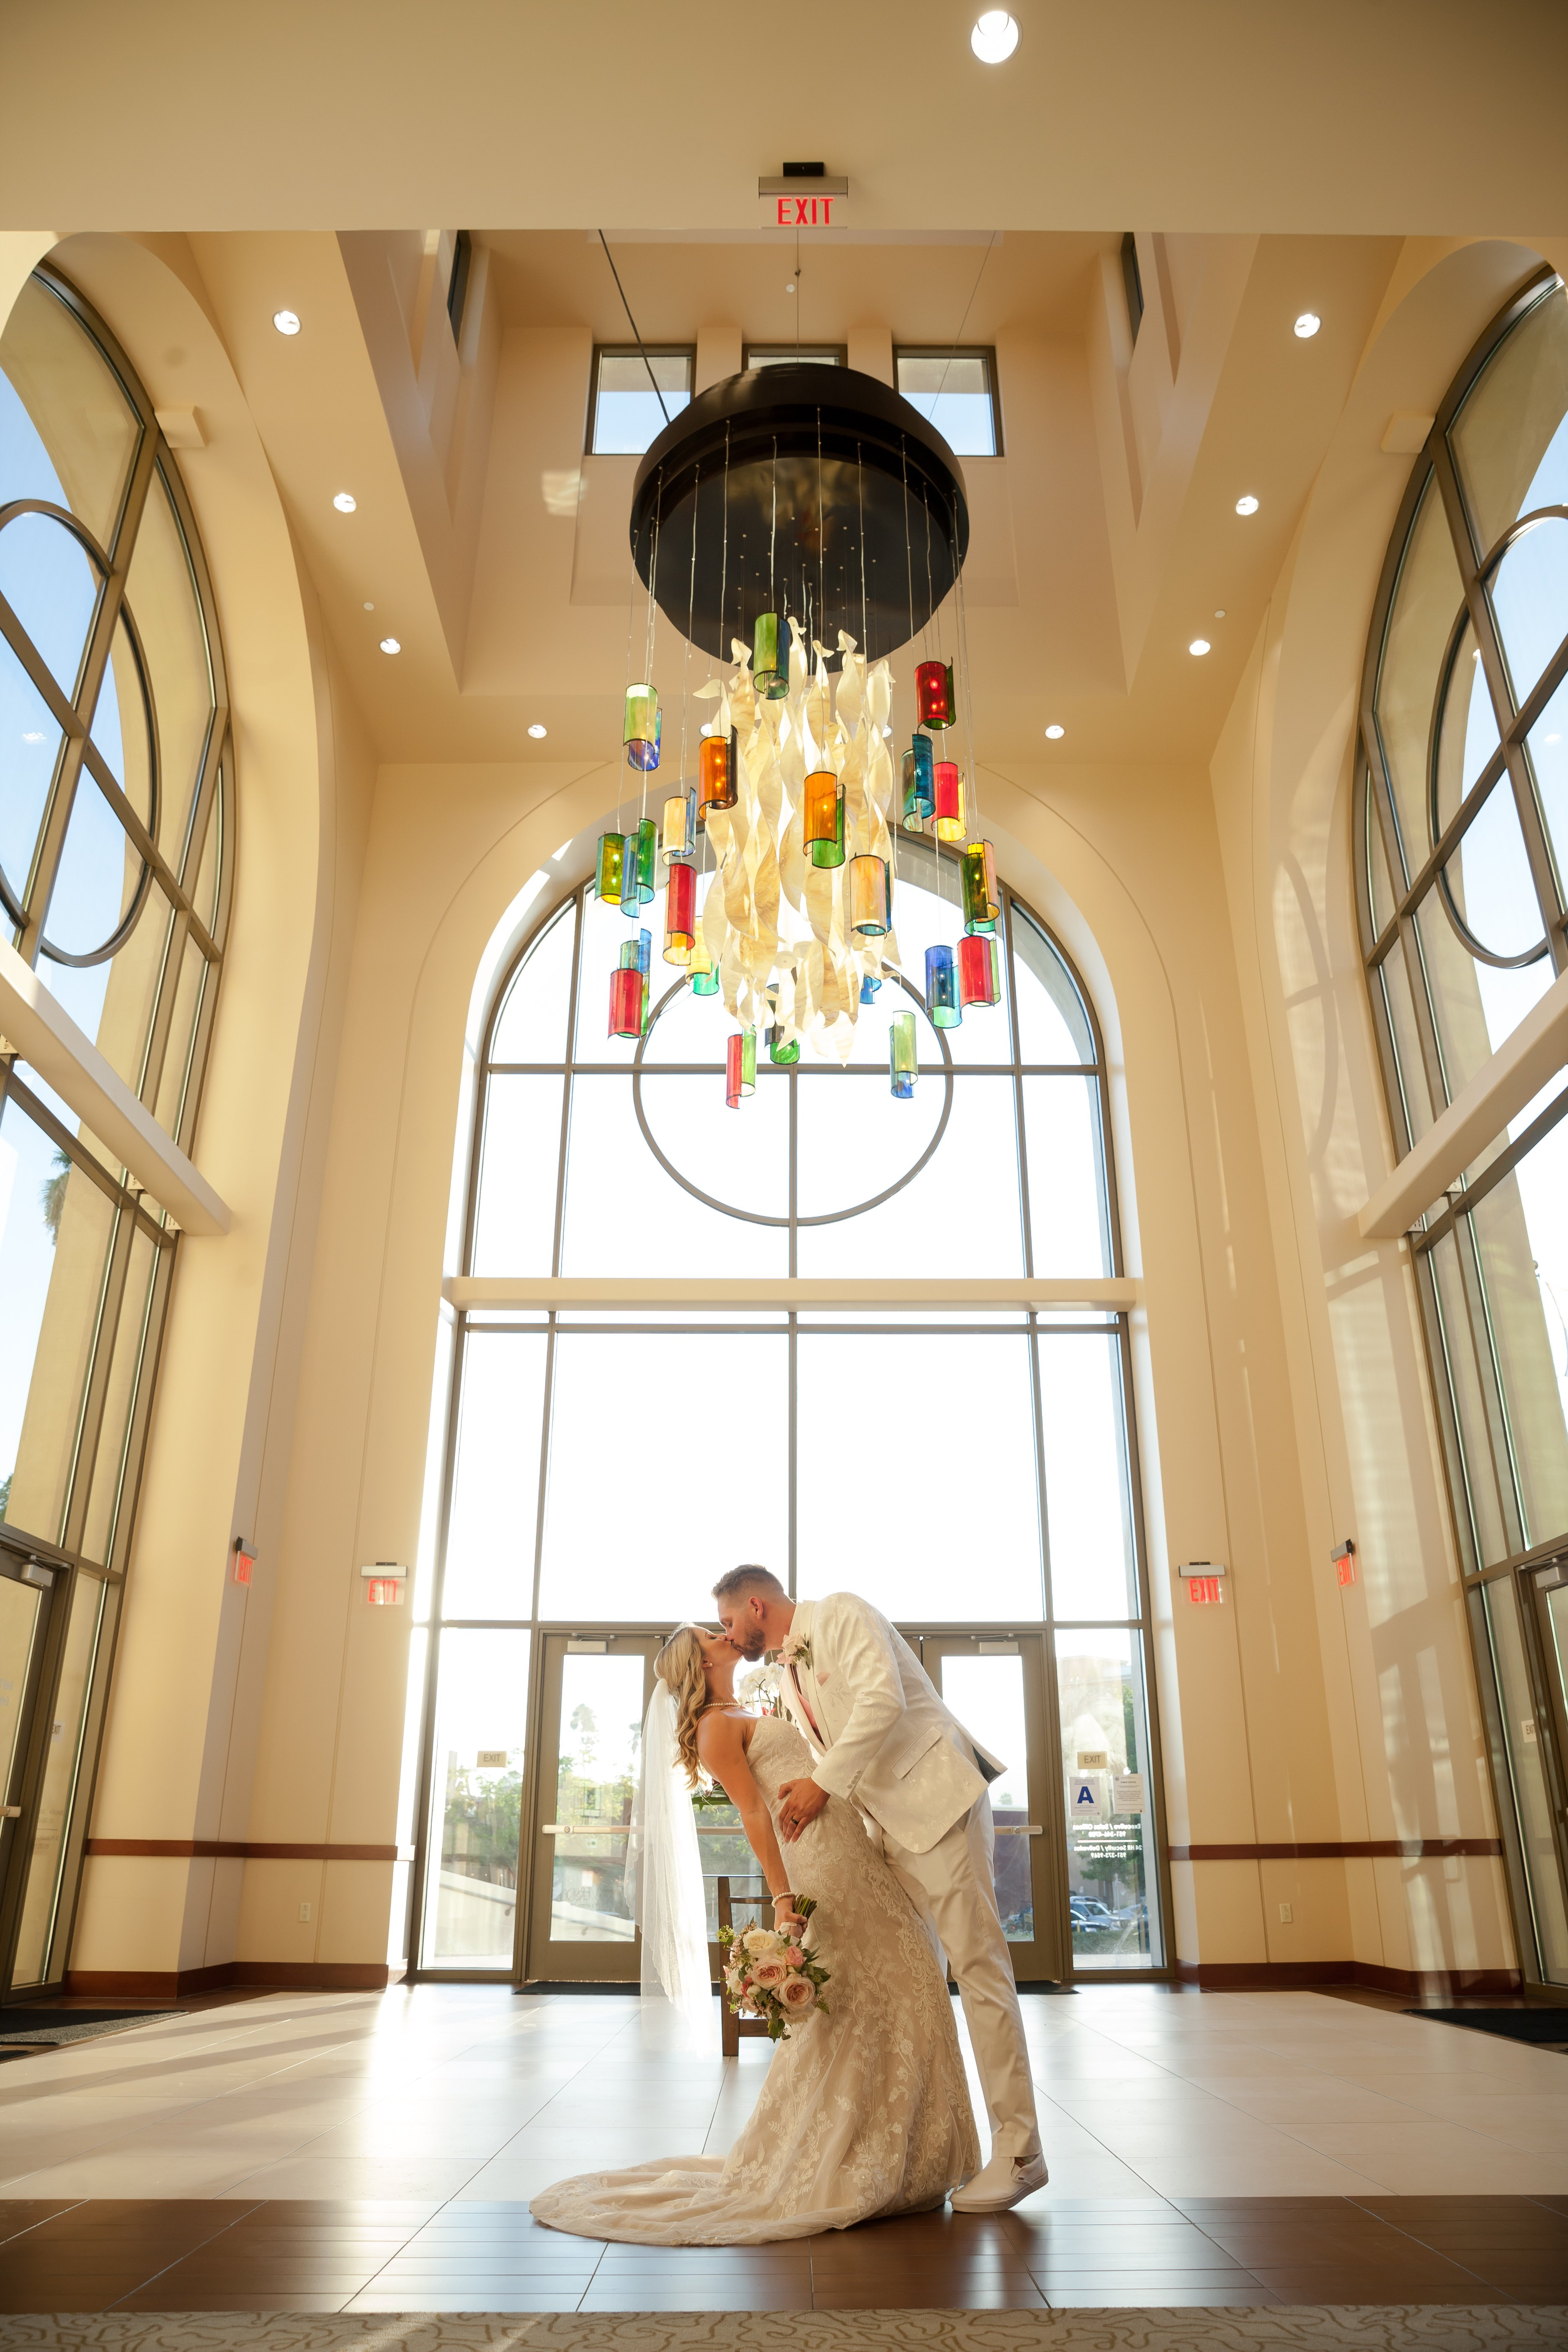 Bride and groom kiss under the convention center's chandelier